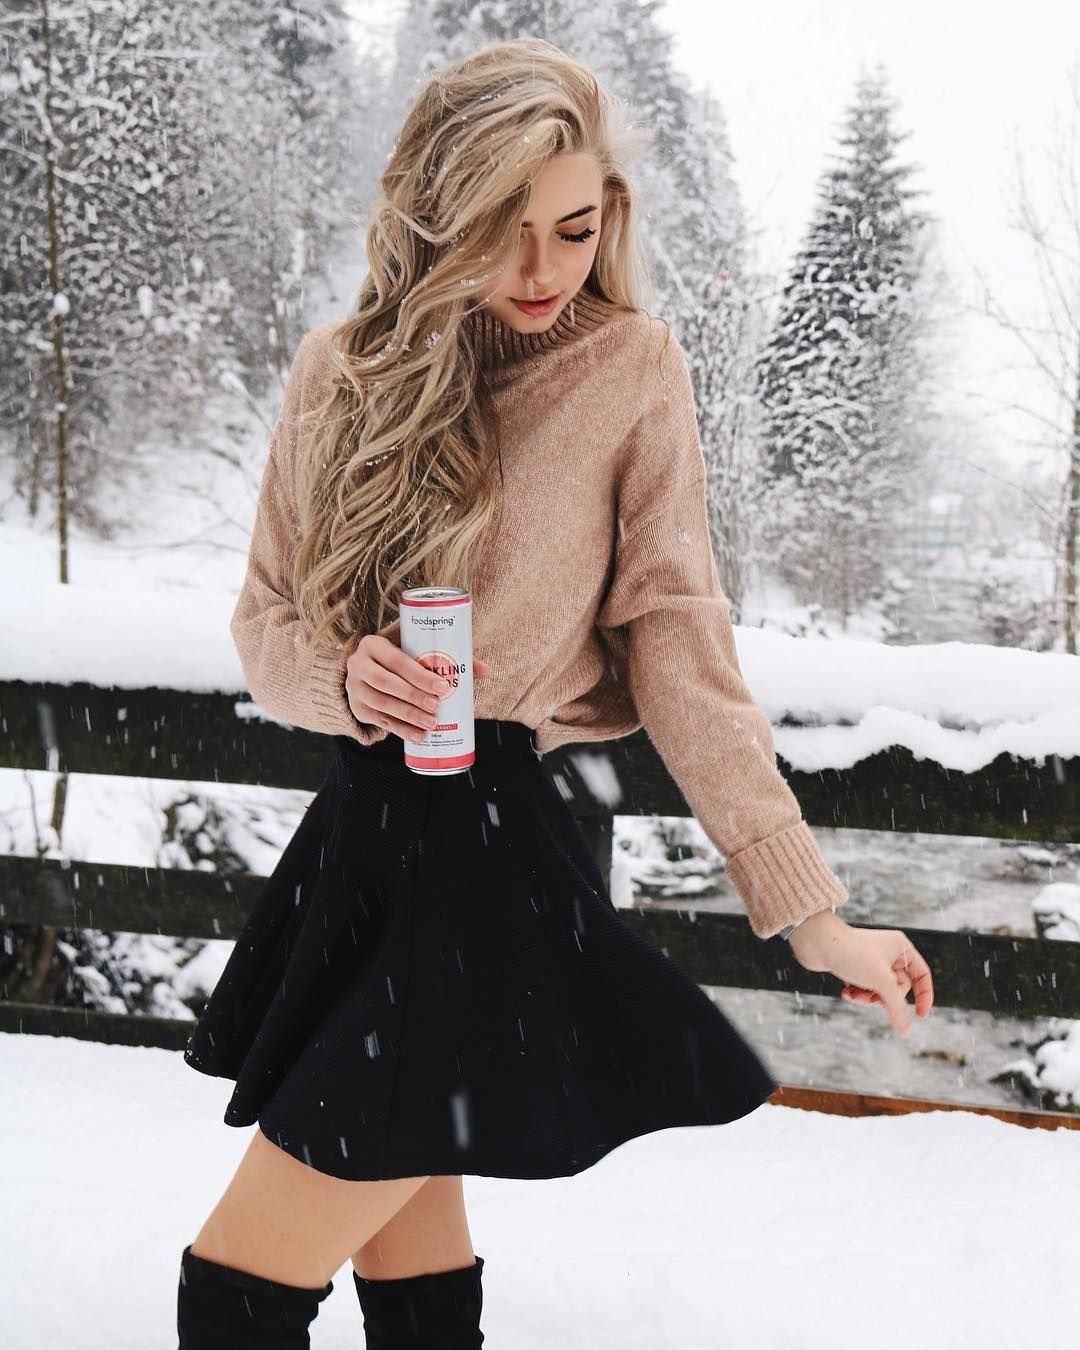 12.5k likes, 303 comments - fitness | fashion | lifestyle